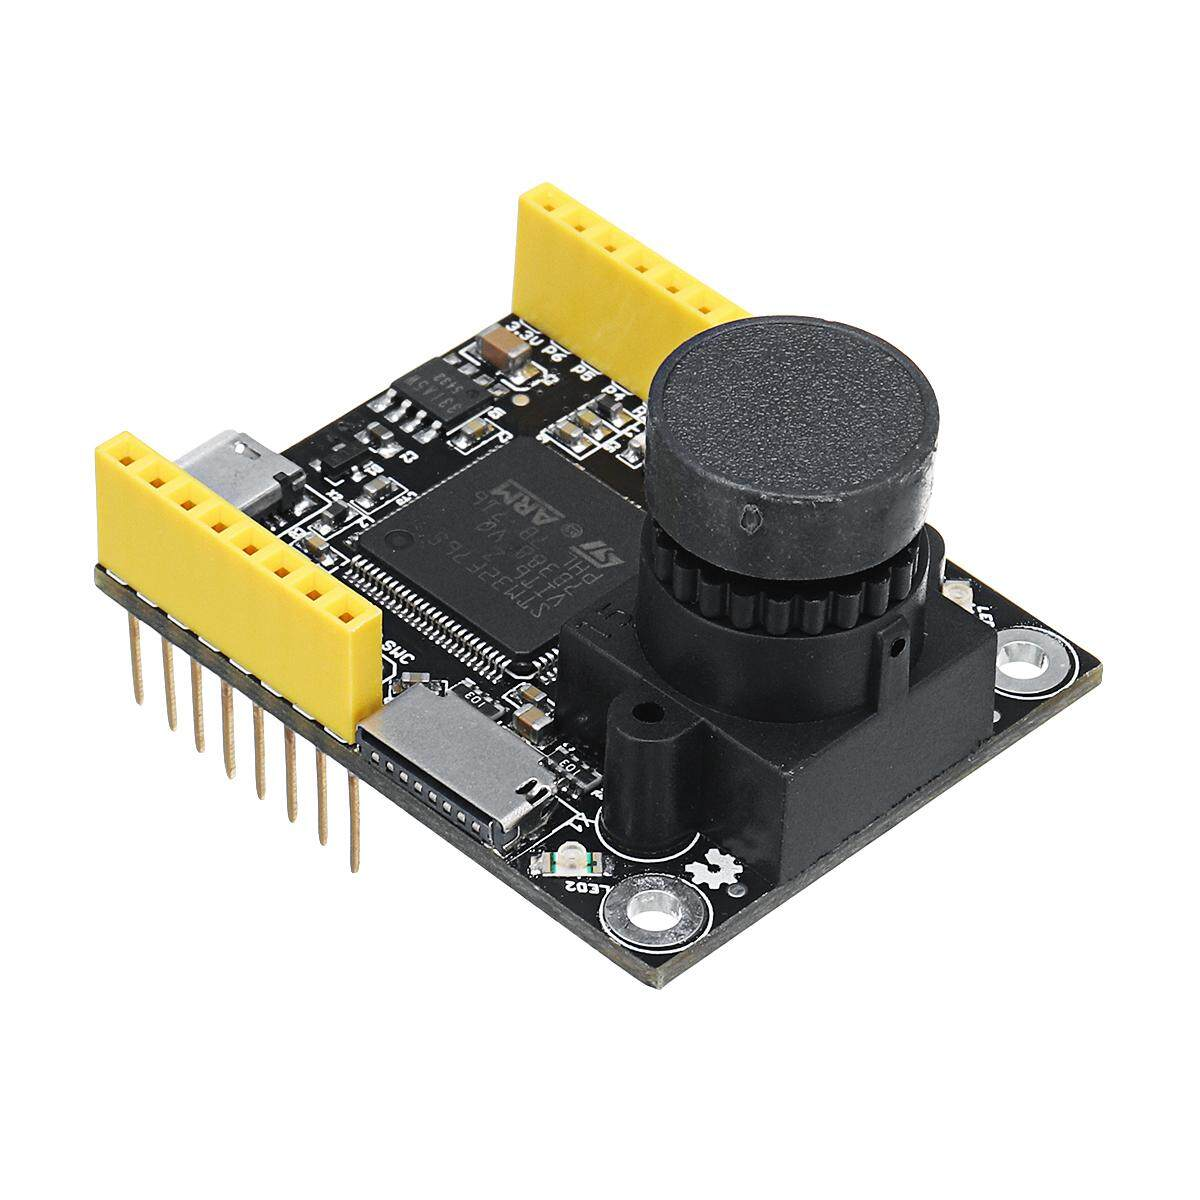 OpenMV3 Cam M7 Smart Camera Image Processing Color Recognition Sensor  Visual Inspection Line Camera Board